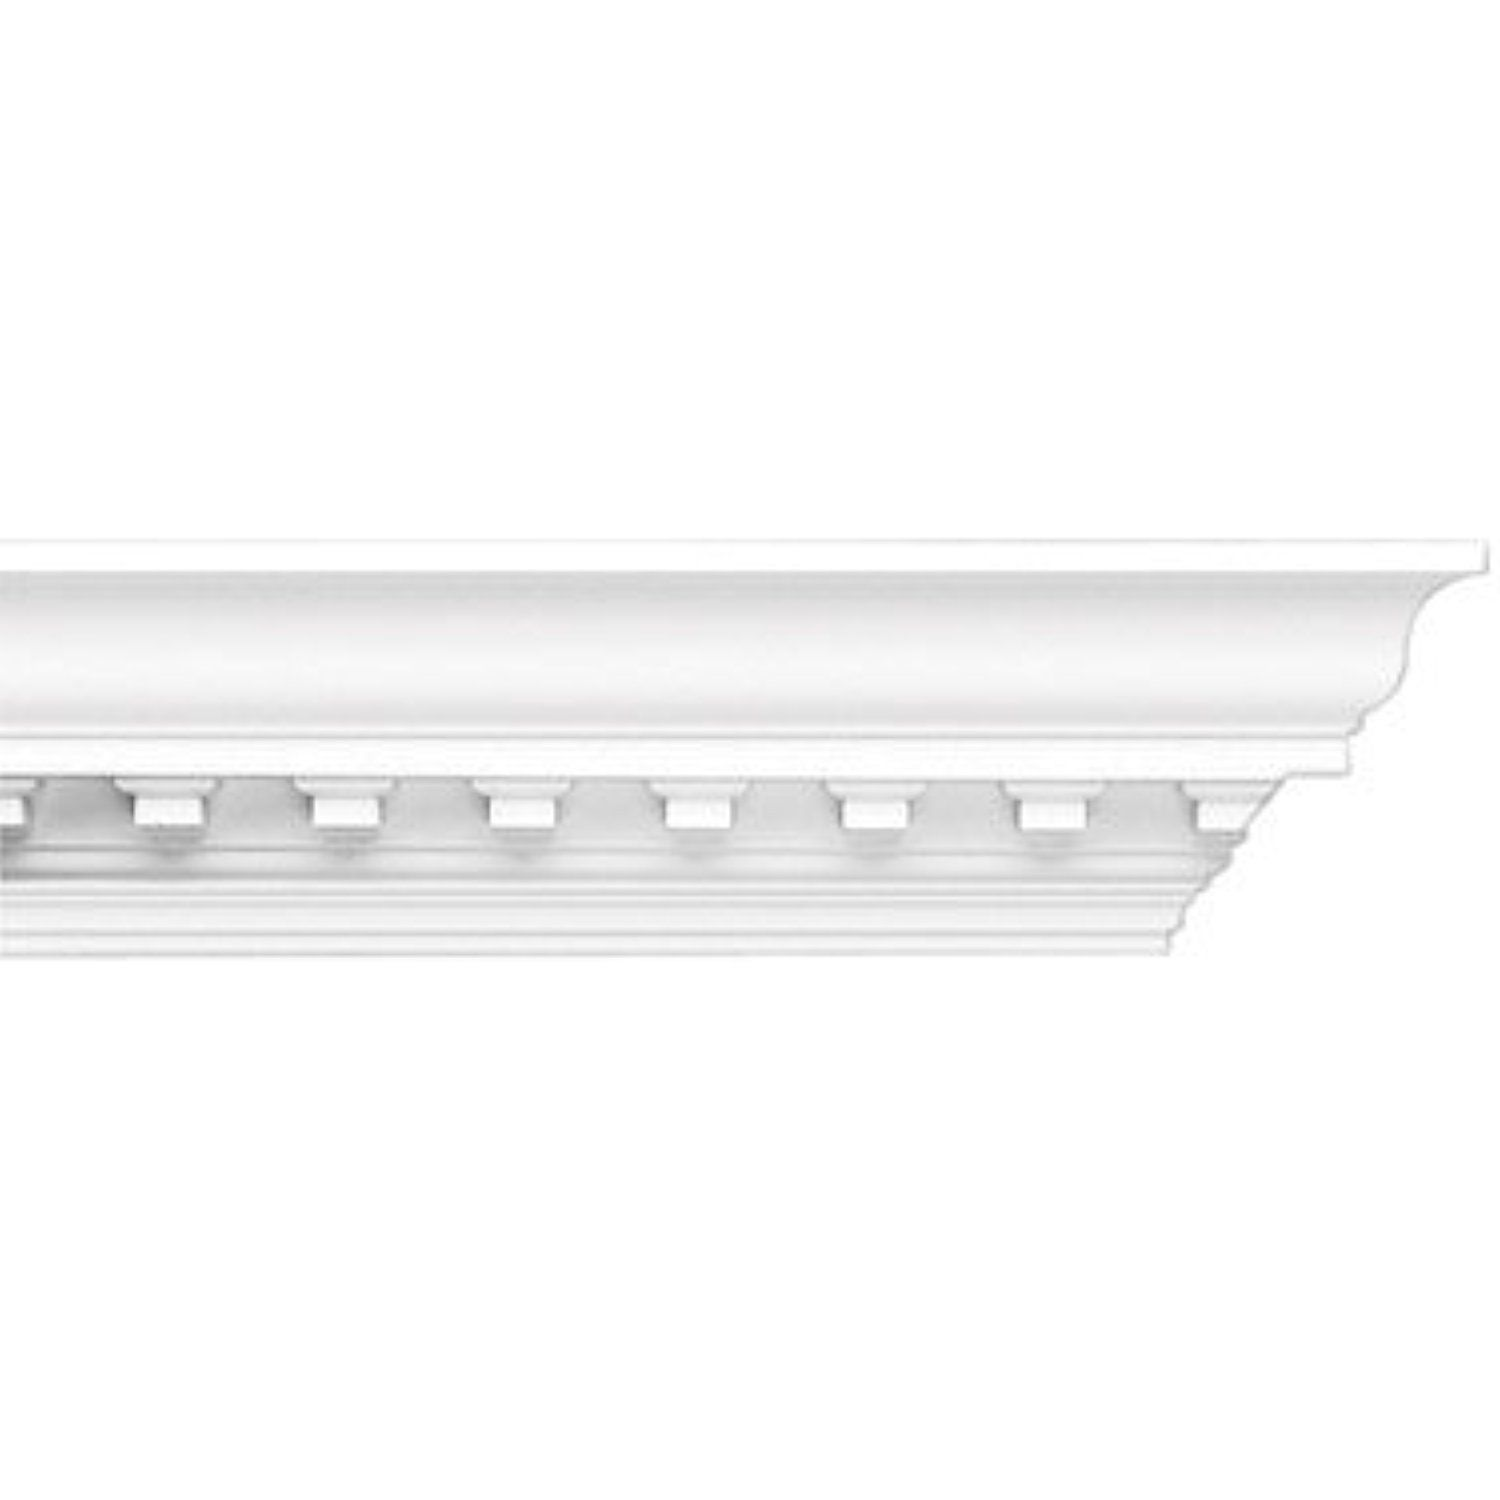 Focal Point 23600 Concord Dentil Crown Moulding 5 7 8 Inch By 8 Foot Primed White 6 Pack Be Sure To Check Out This Aweso Focal Point Concord Crown Molding